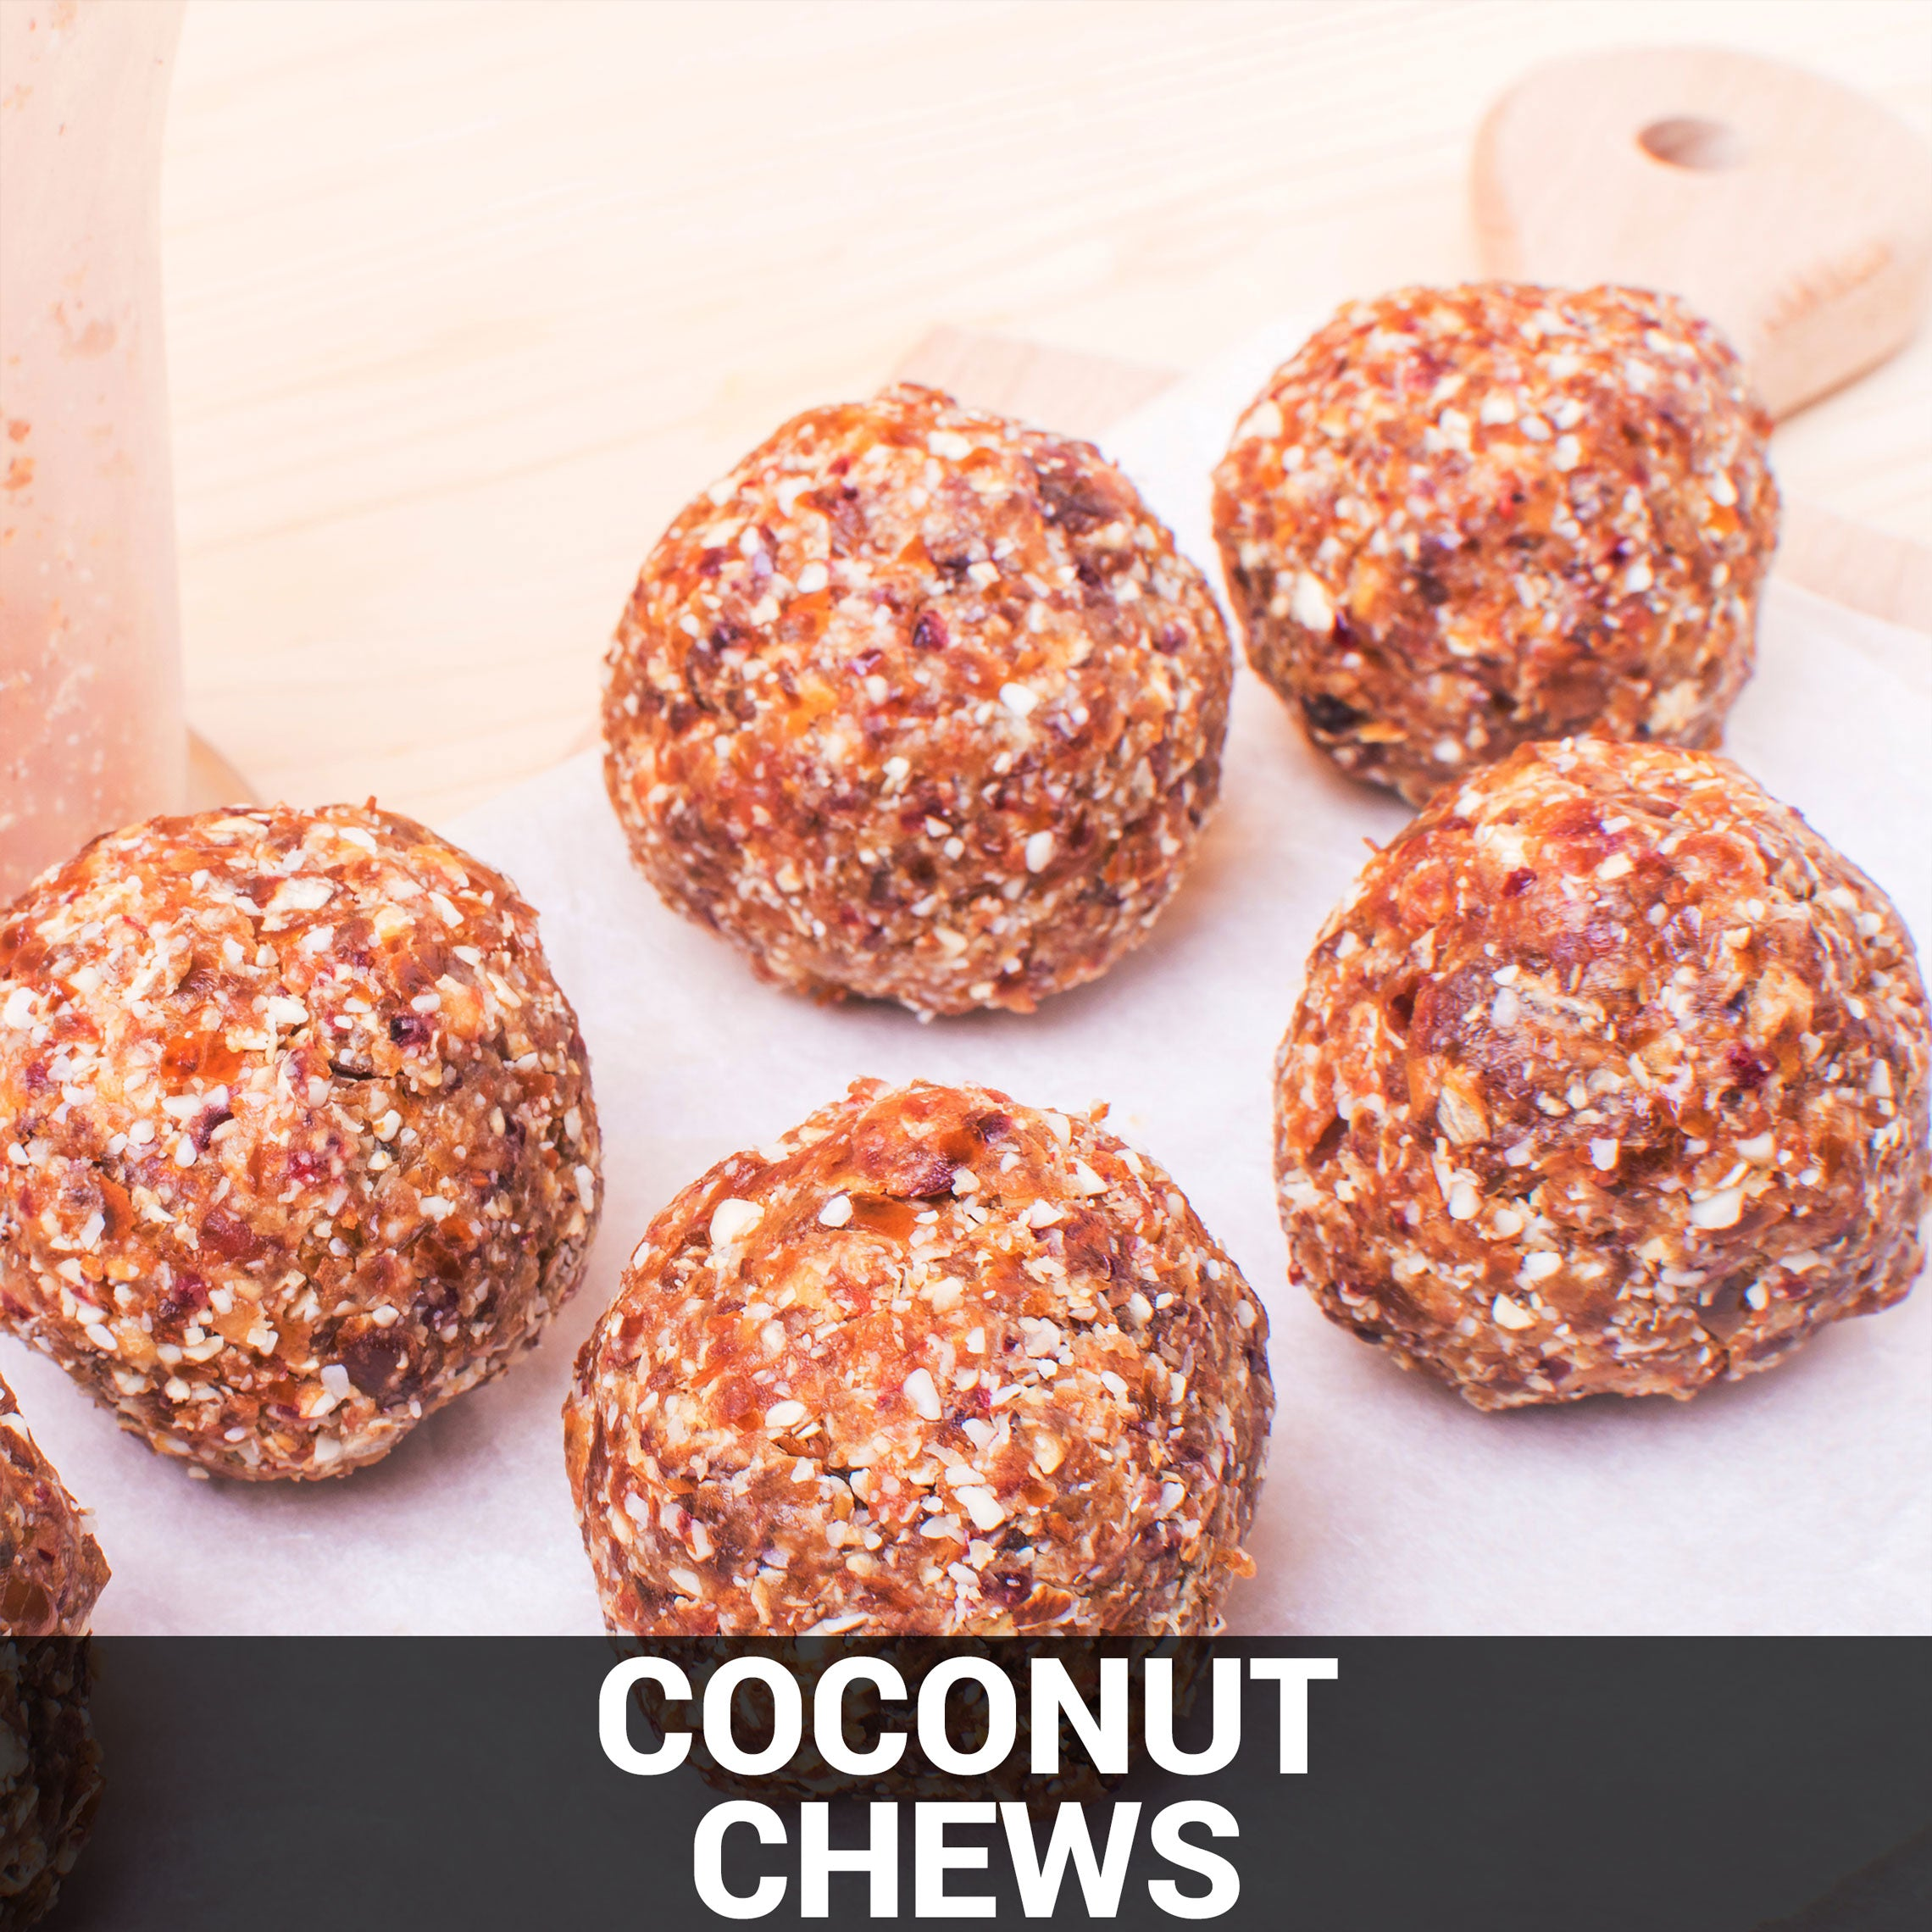 Coconut Chews Recipe - Foods Alive